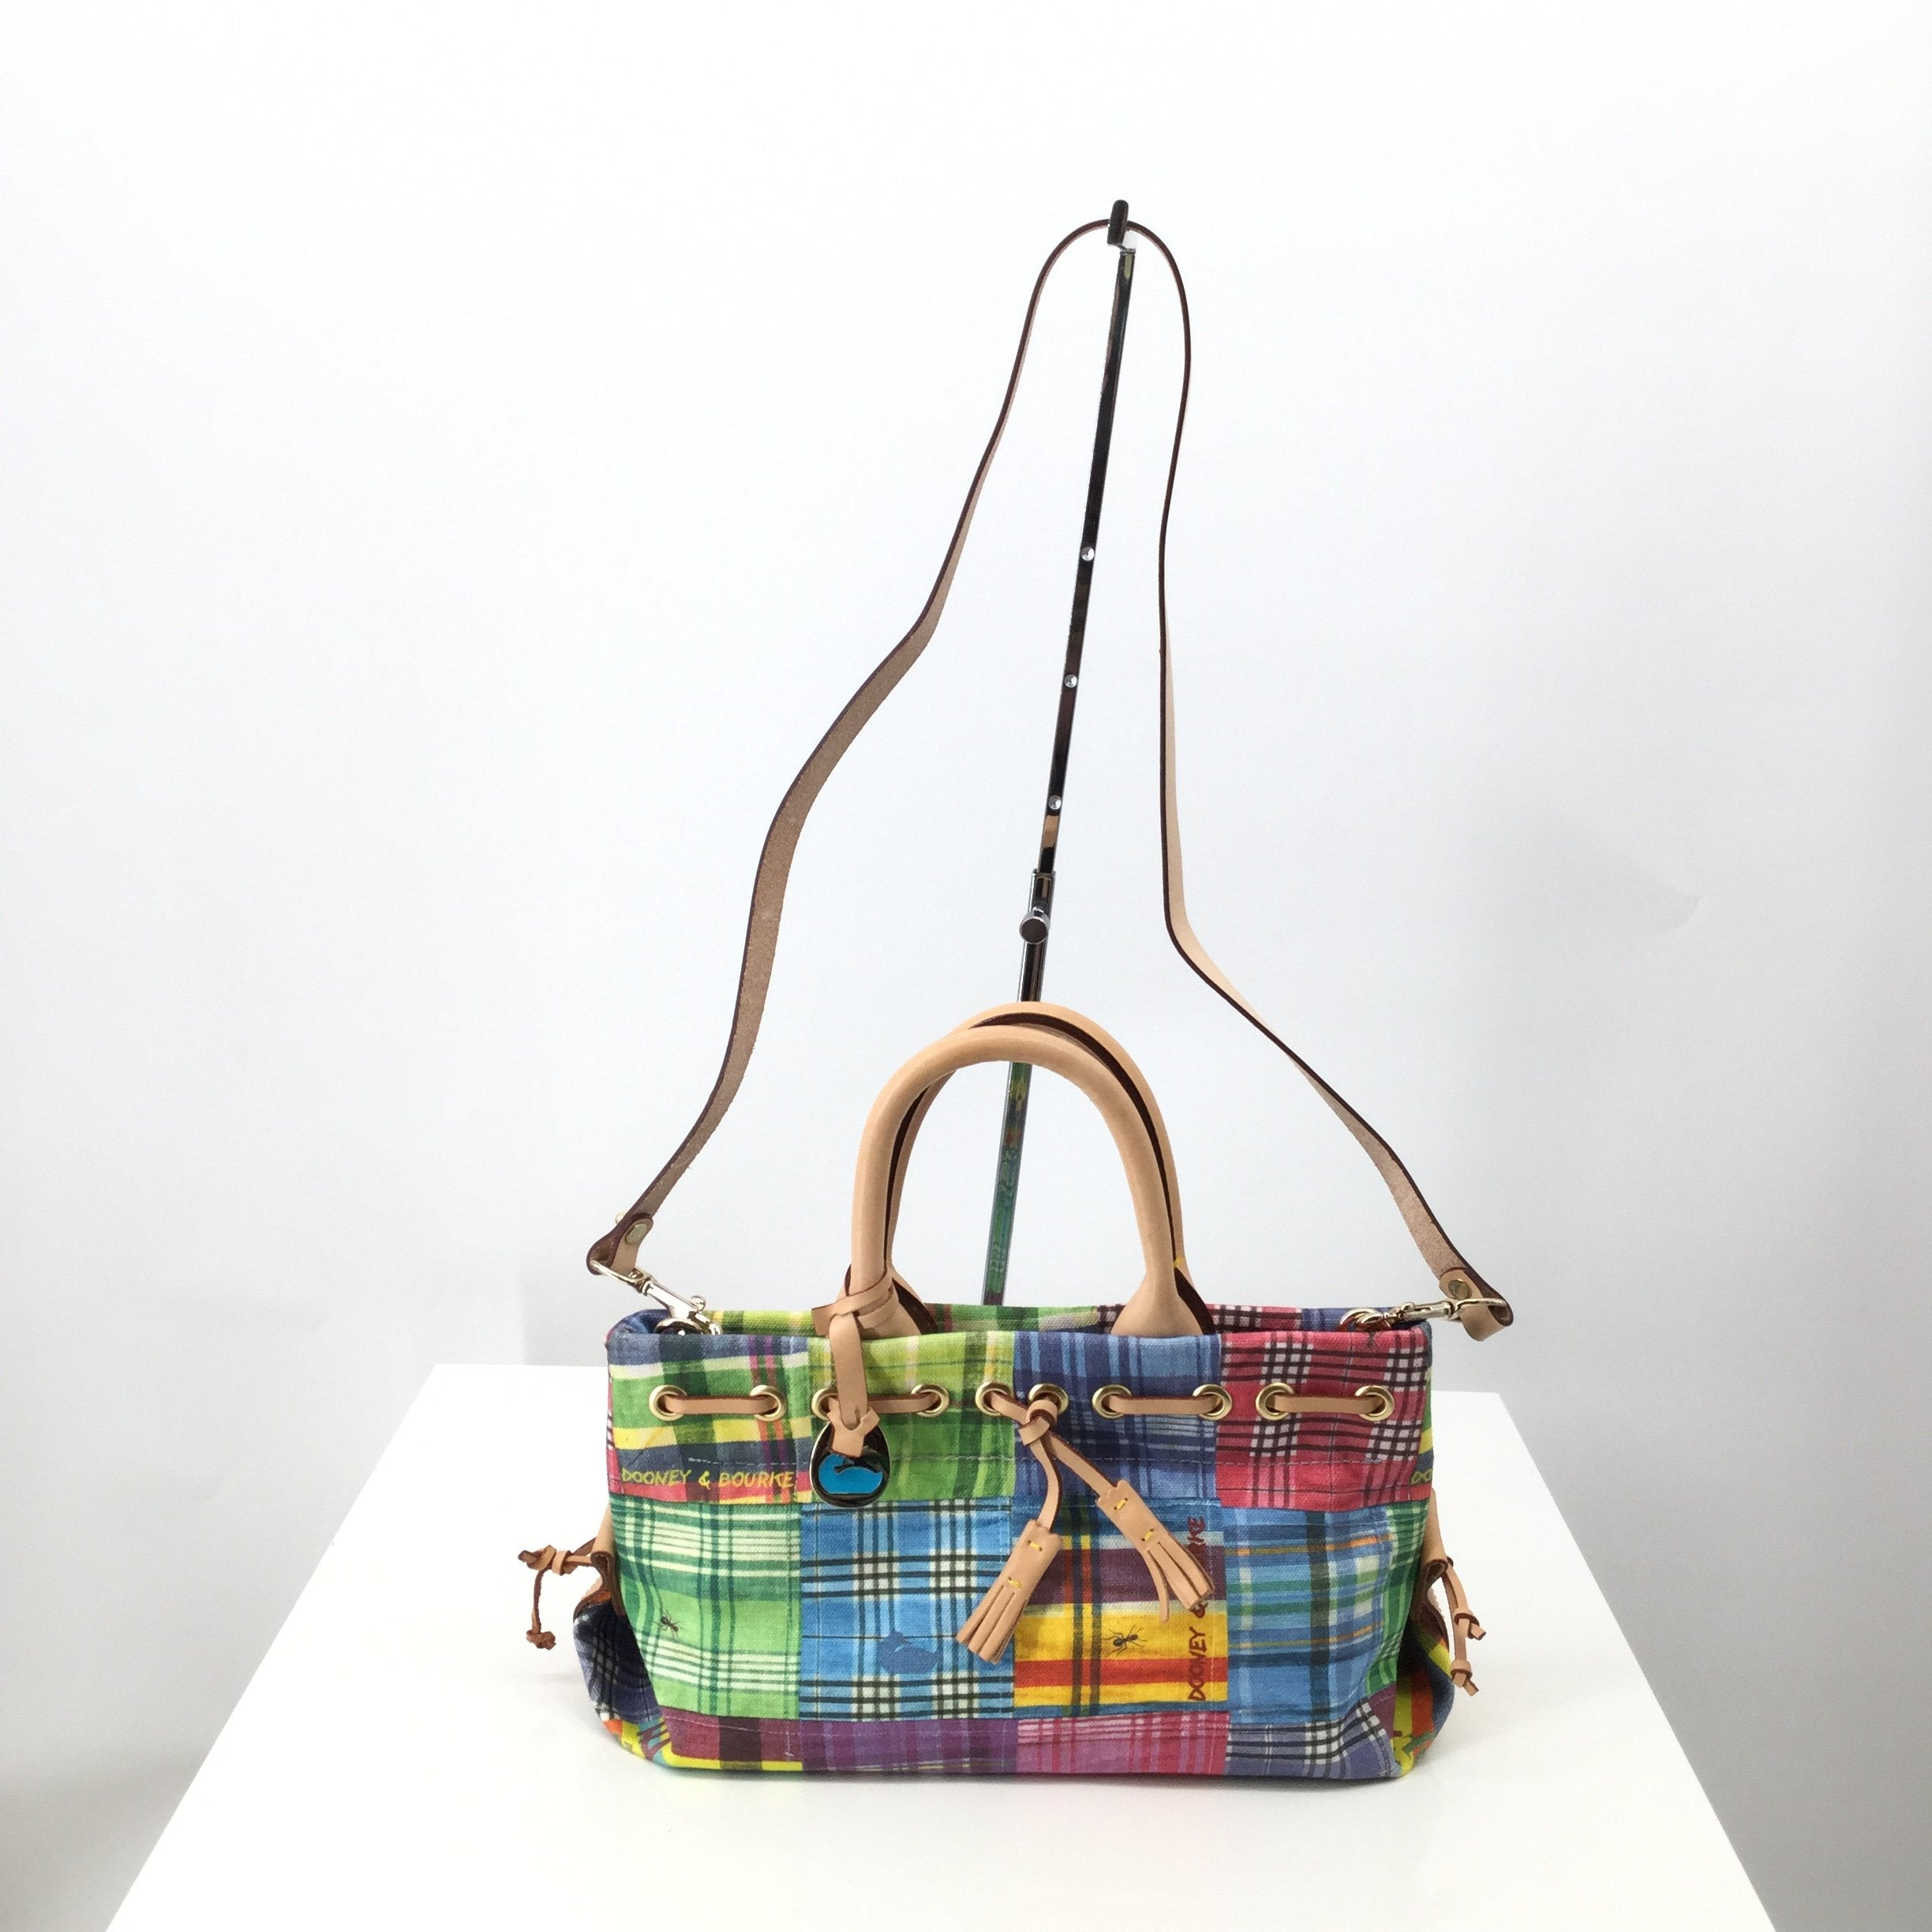 Dooney And Bourke O Handbag Designer Size:small - <P>SMALL PLAID MULTI-COLORED DOONEY AND BOURKE BAG WITH REMOVABLE LONG STRAP. TAN LEATHER ACCENTS AND A SNAP CLOSURE.</P>